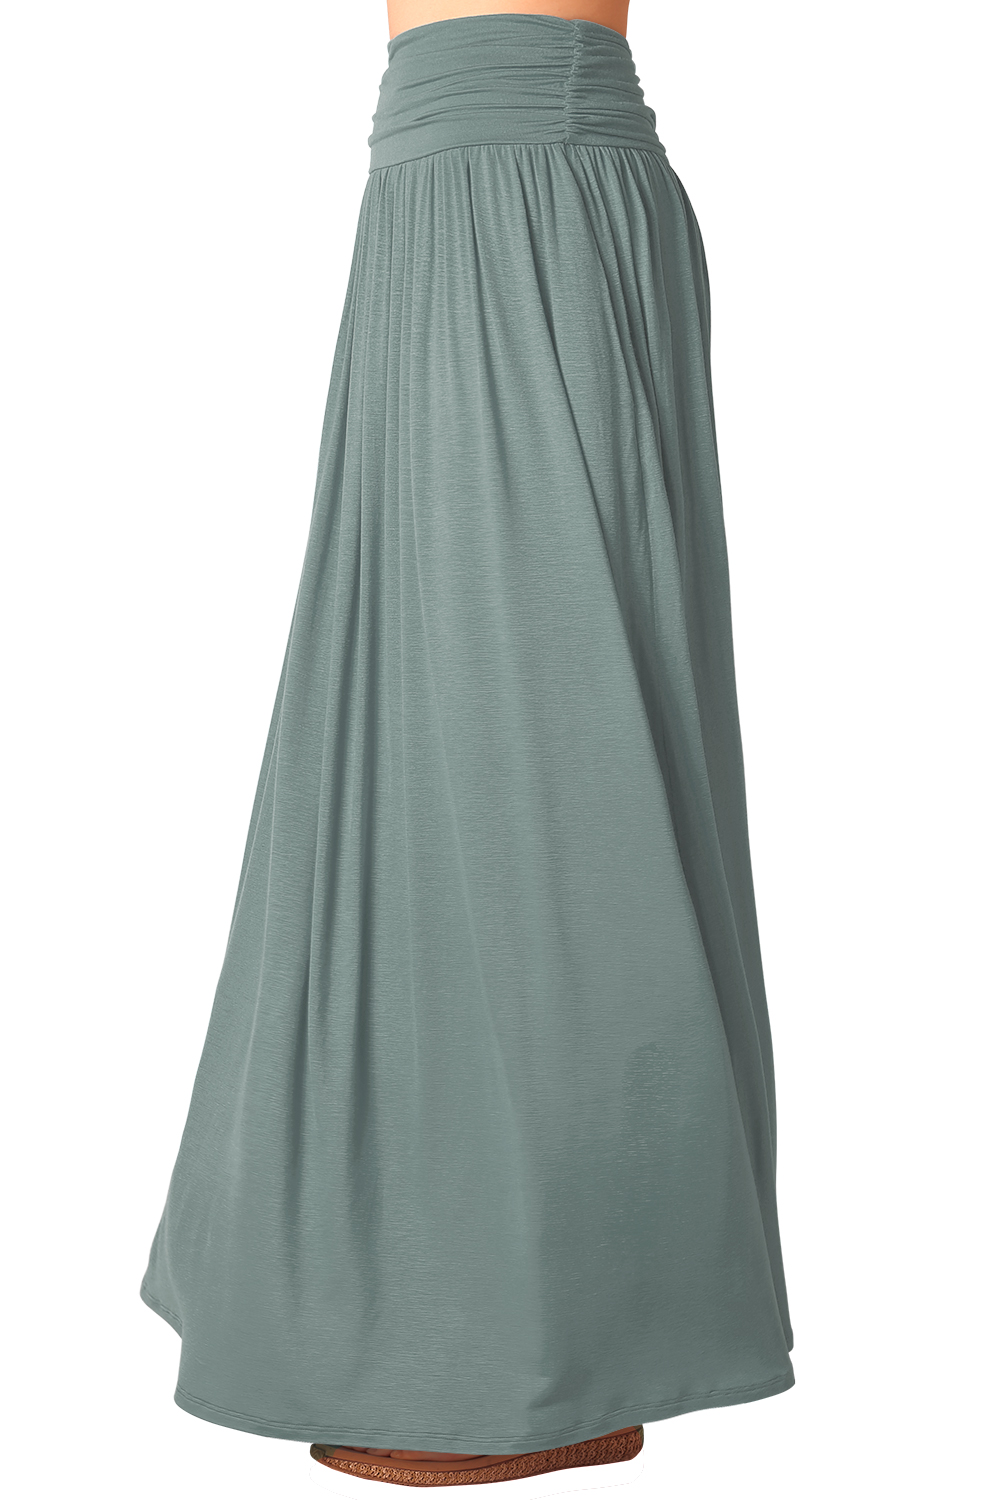 pleated high waist stretchy plain jersey flared swing